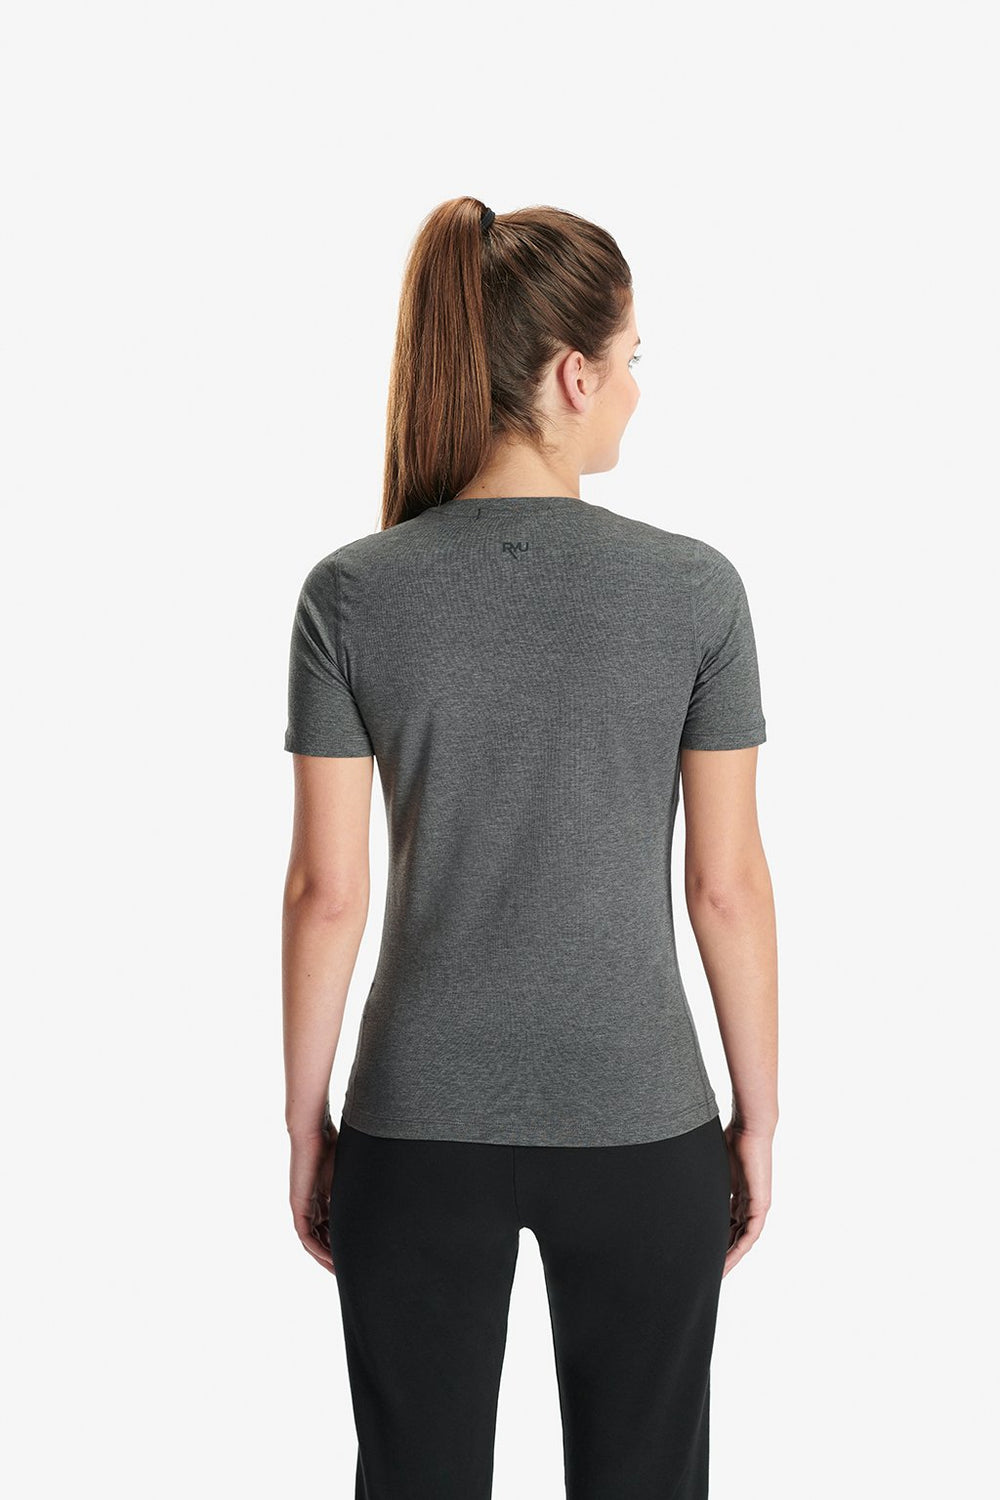 RYU Womens Standard Issue Crew - RESPECT YOUR UNIVERSE Graphic in Asphalt Heather